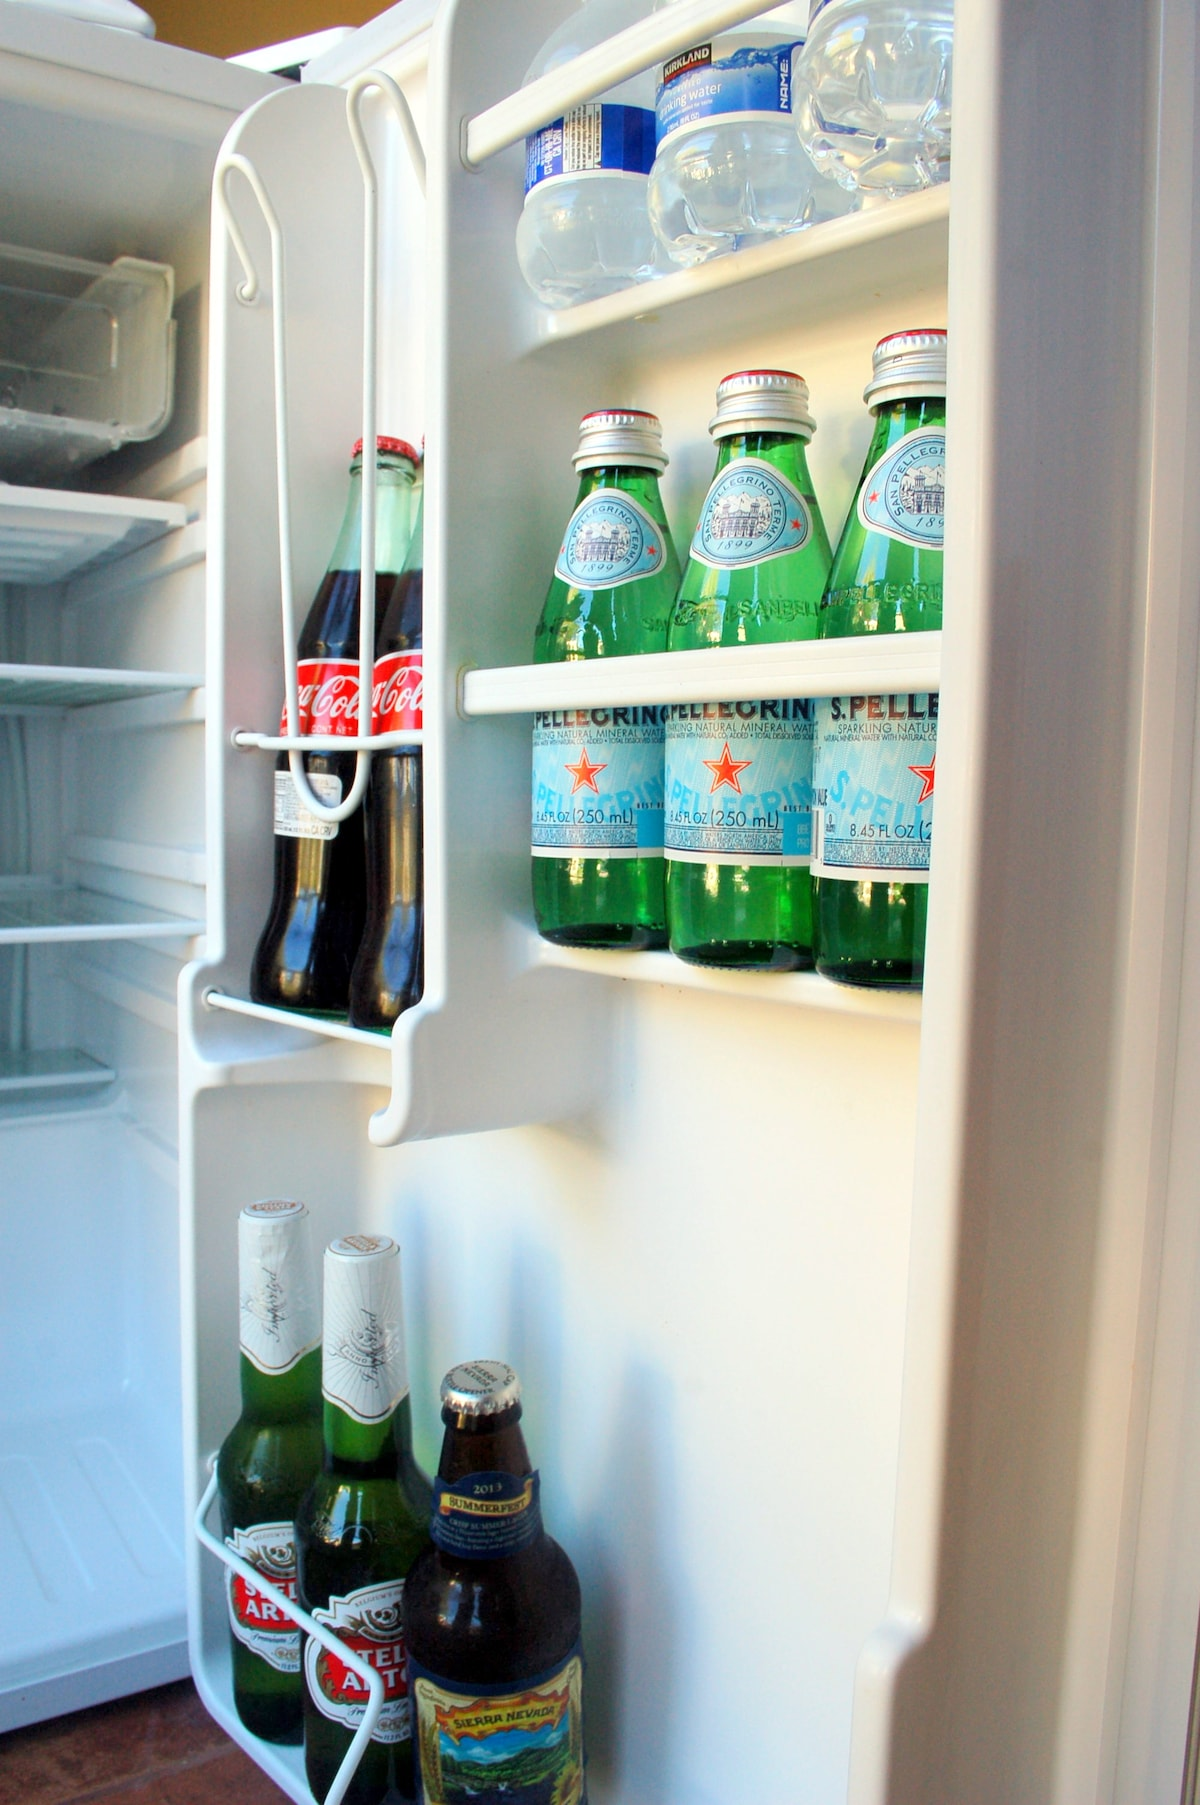 Fridge is stocked with sparkling water, soda, beer etc.  Help yourself!